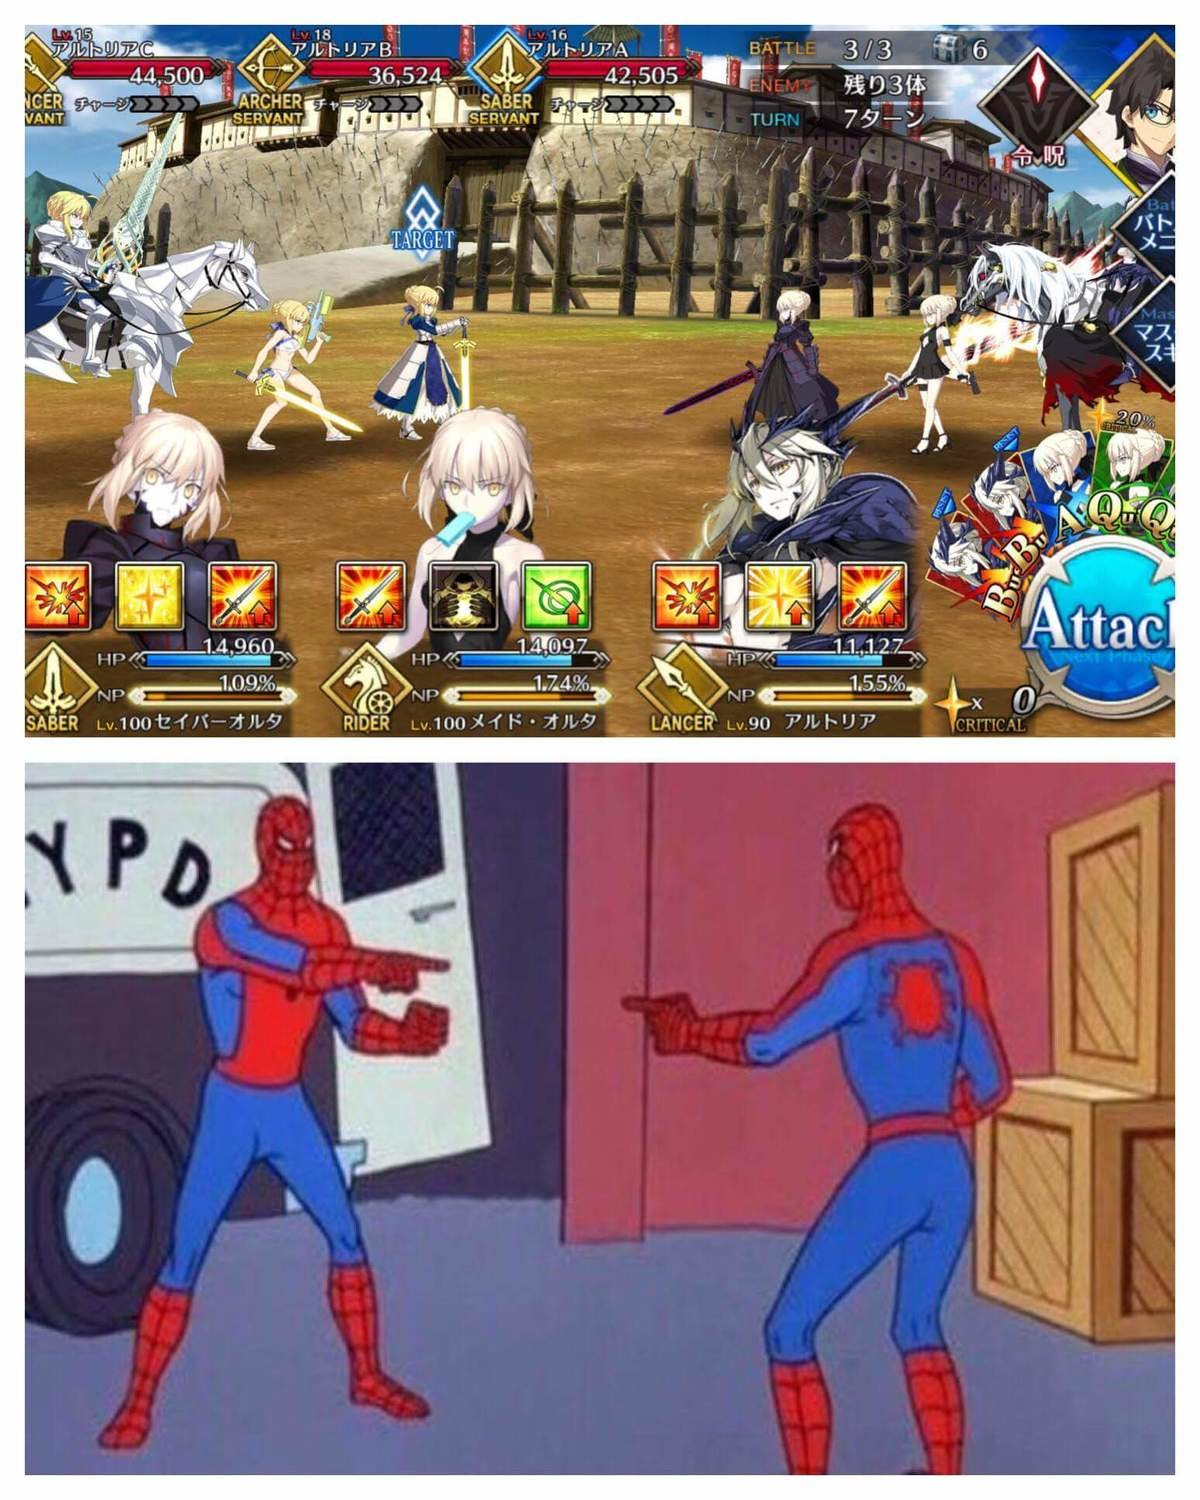 Who Wins?. join list: Lewds4DHeart (1609 subs)Mention History join list:. Nobody wins cause the actual game is .